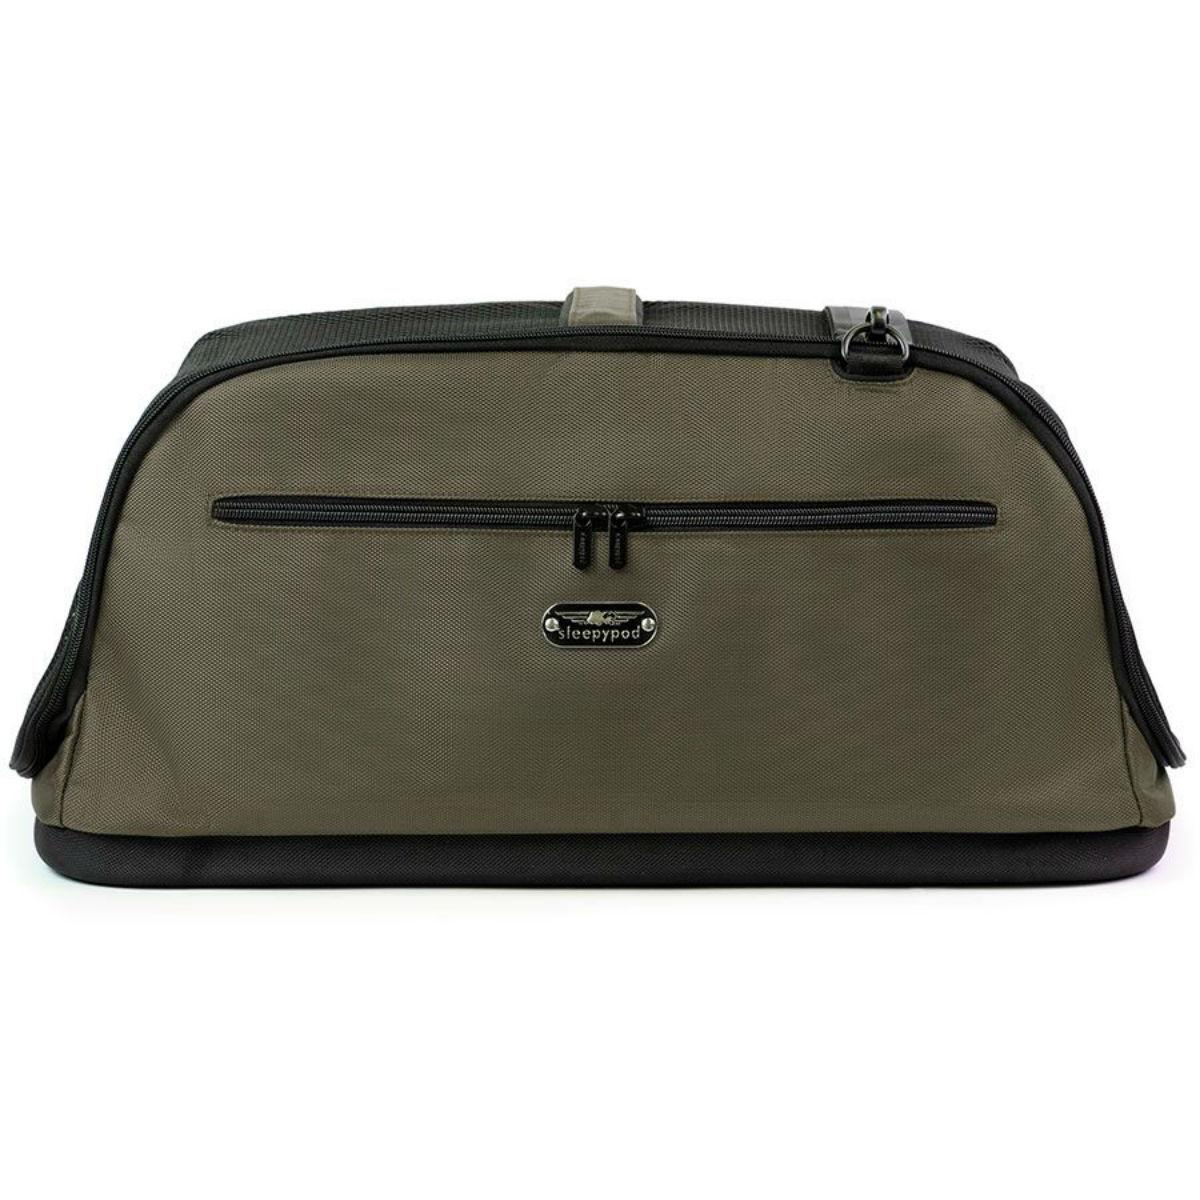 Sleepypod Air Travel Pet Carrier Bed - Olive